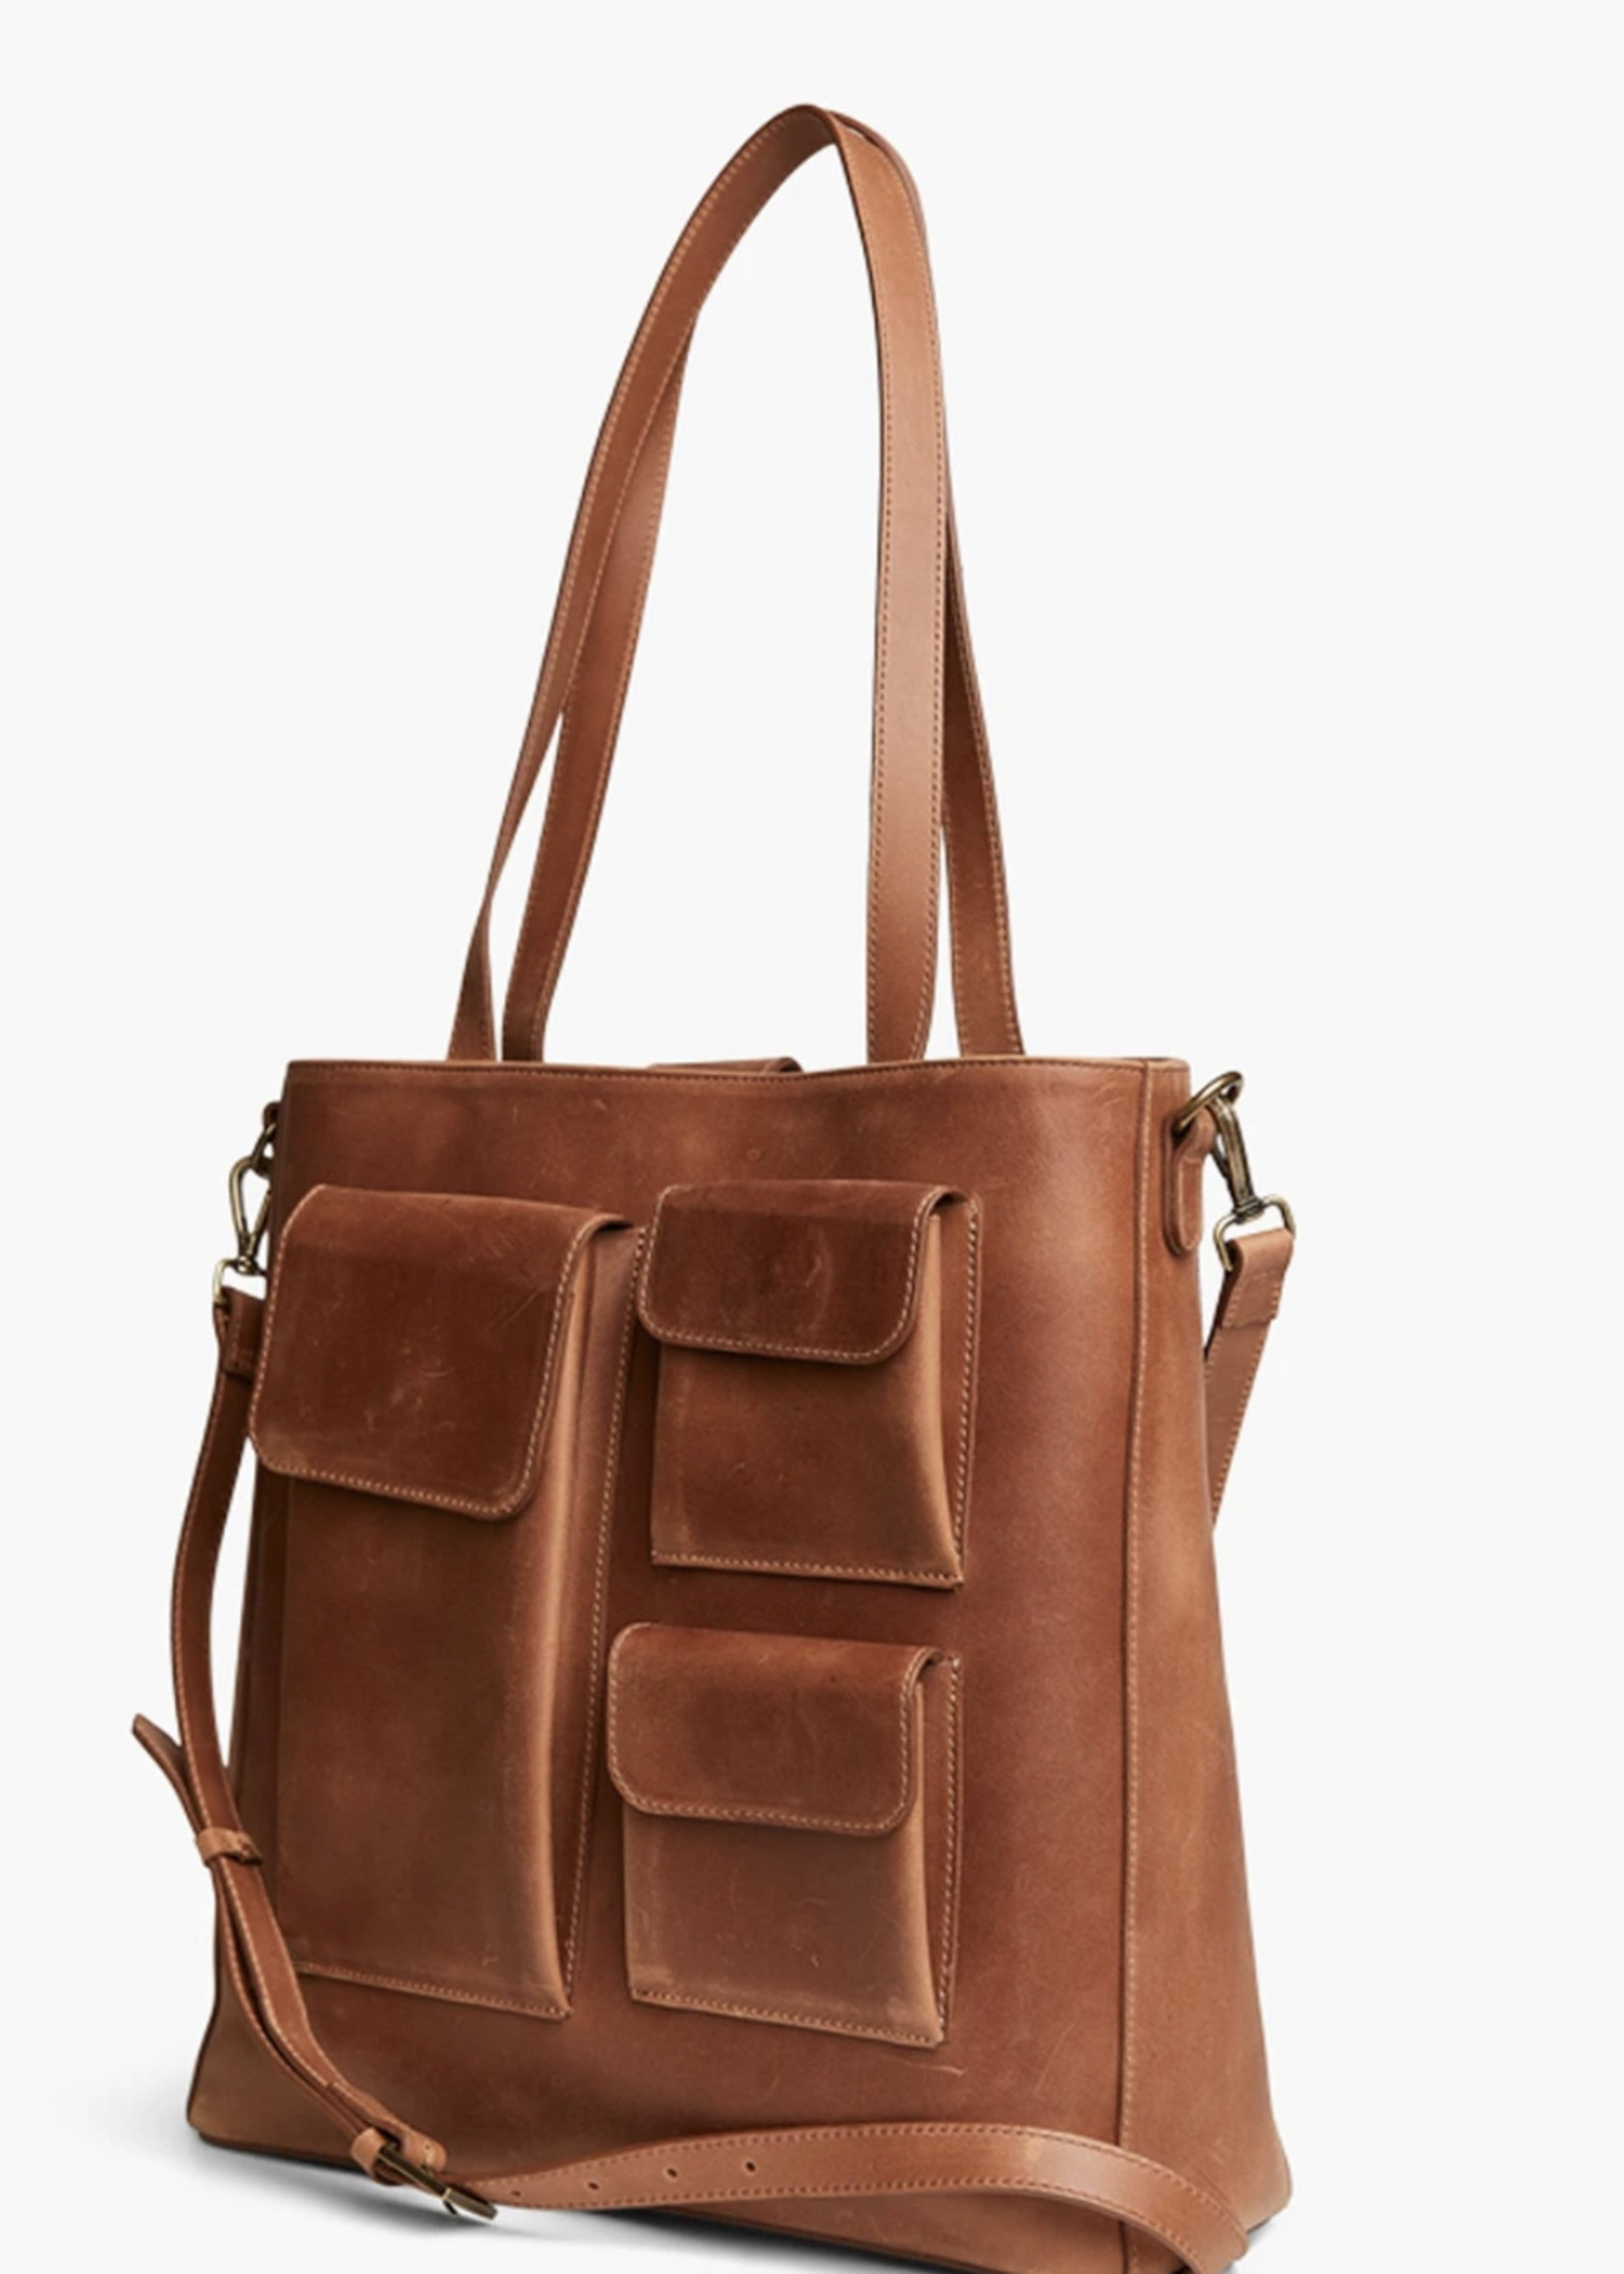 Elitaire Boutique The Olivia Tote in Whiskey